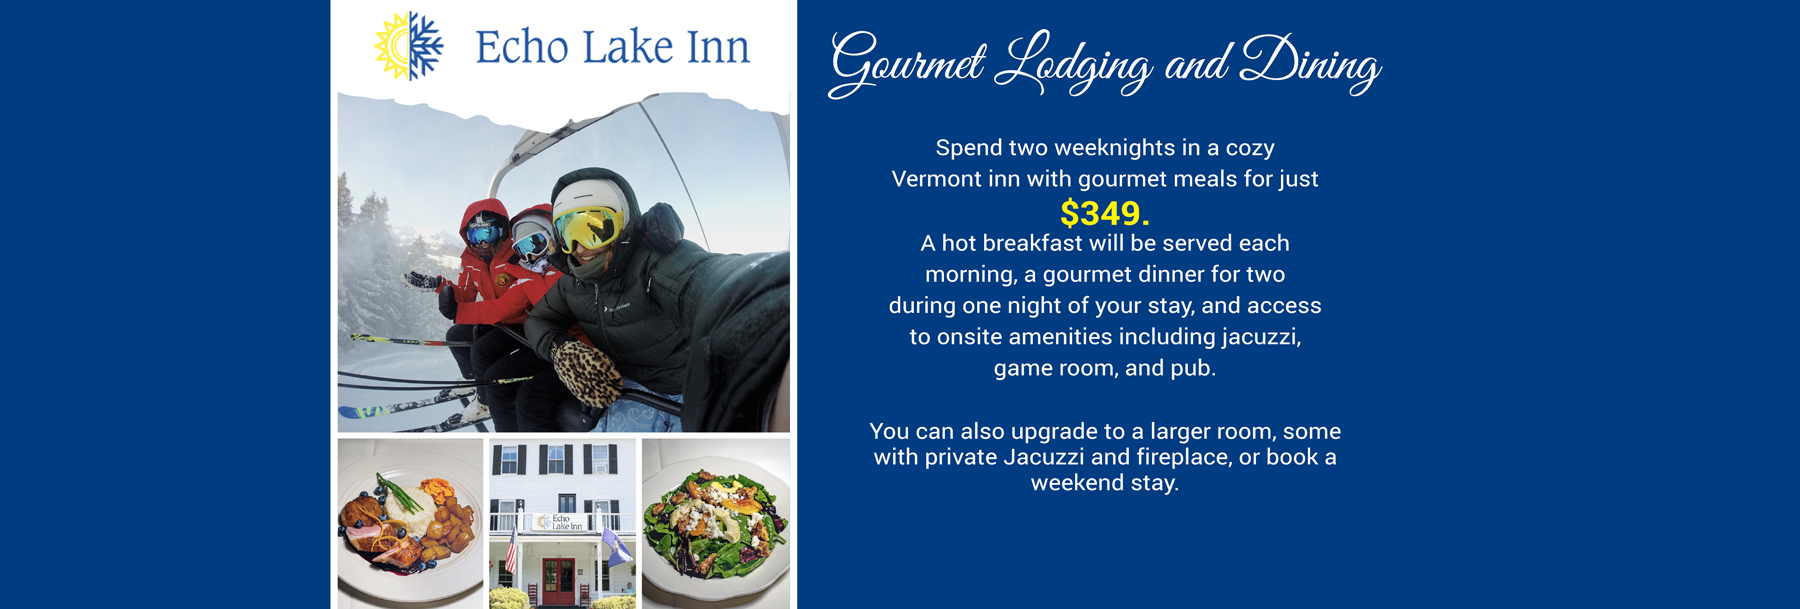 Gourmet Lodging and Dining Special